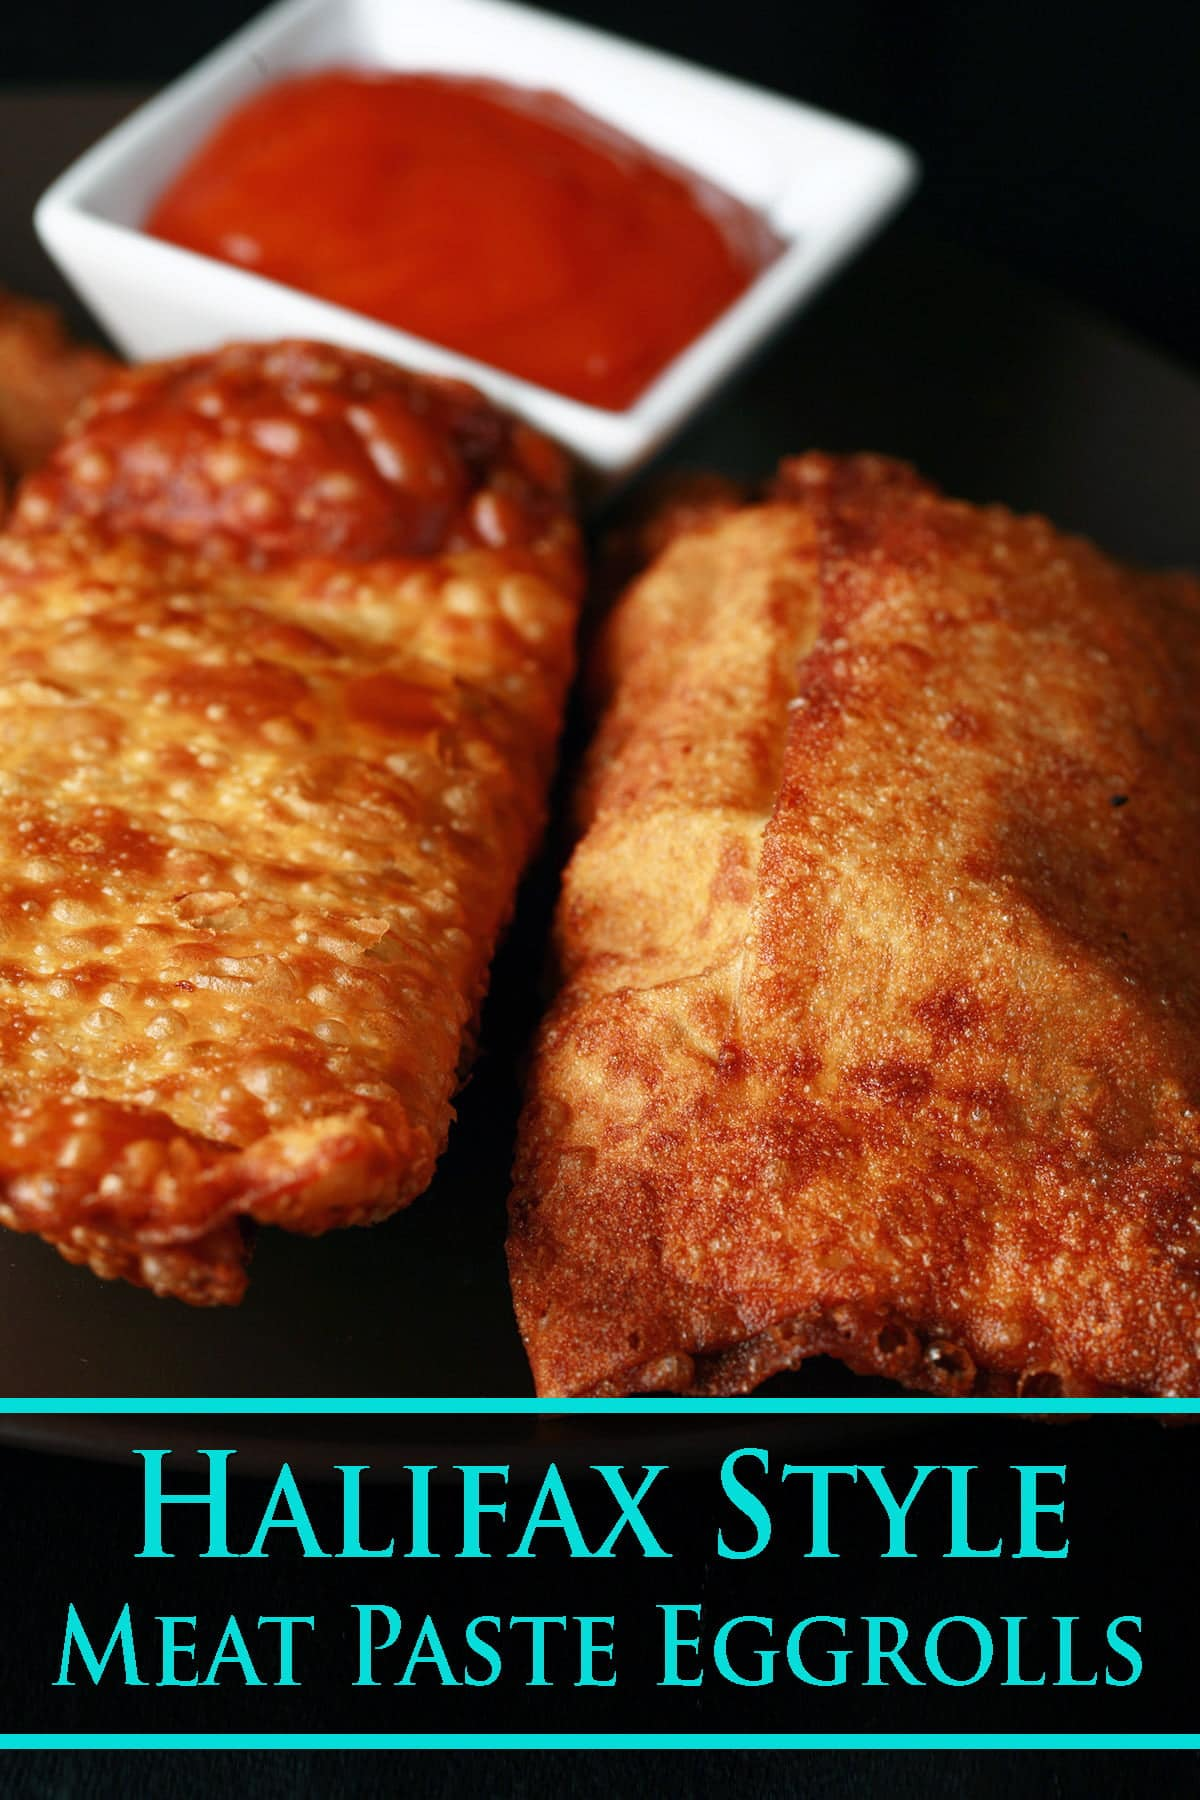 A small round plate holds several halifax style meat paste egg rolls, next to a small bowl of deep orange plum sauce.